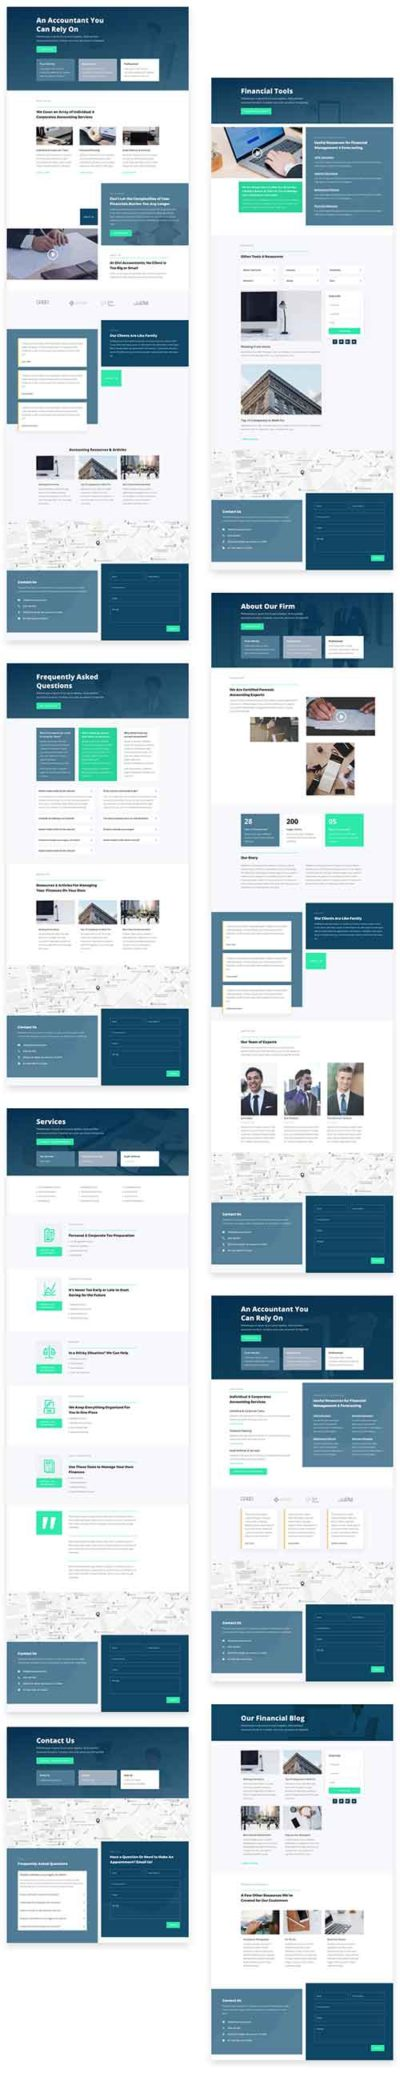 free divi layout for accountants